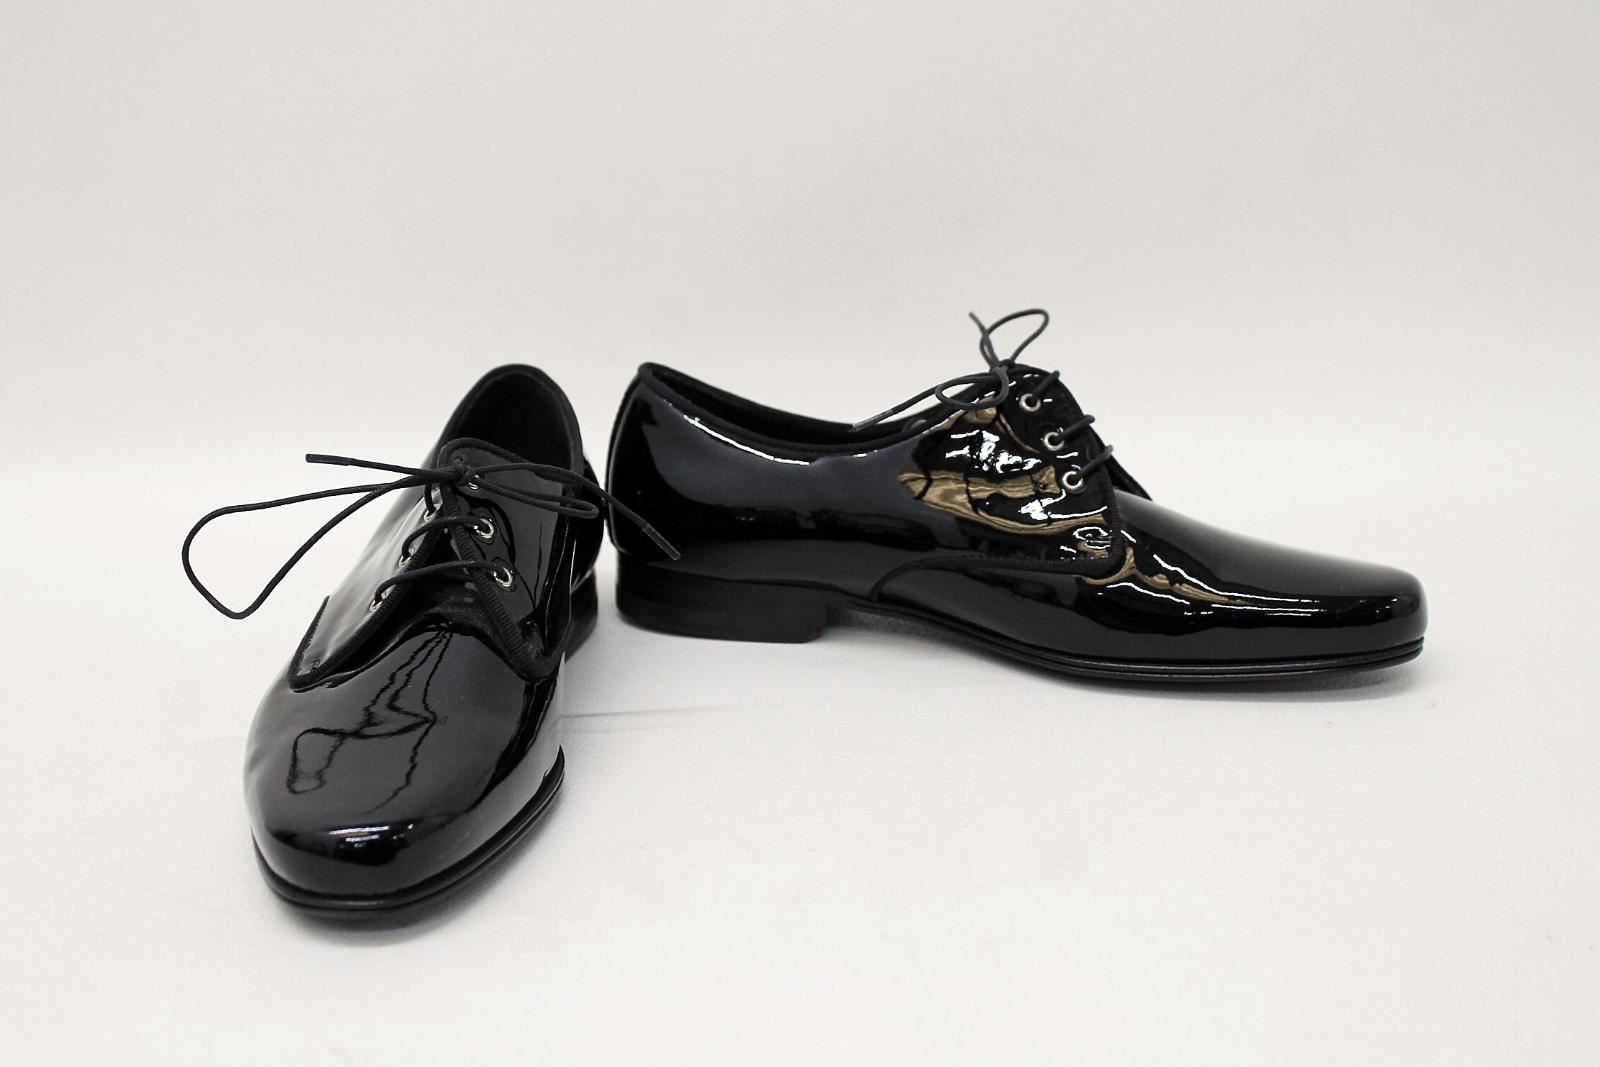 DOLCE-amp-GABBANA-Ladies-Black-Patent-Leather-Lace-Up-Loafers-Shoes-EU36-UK3